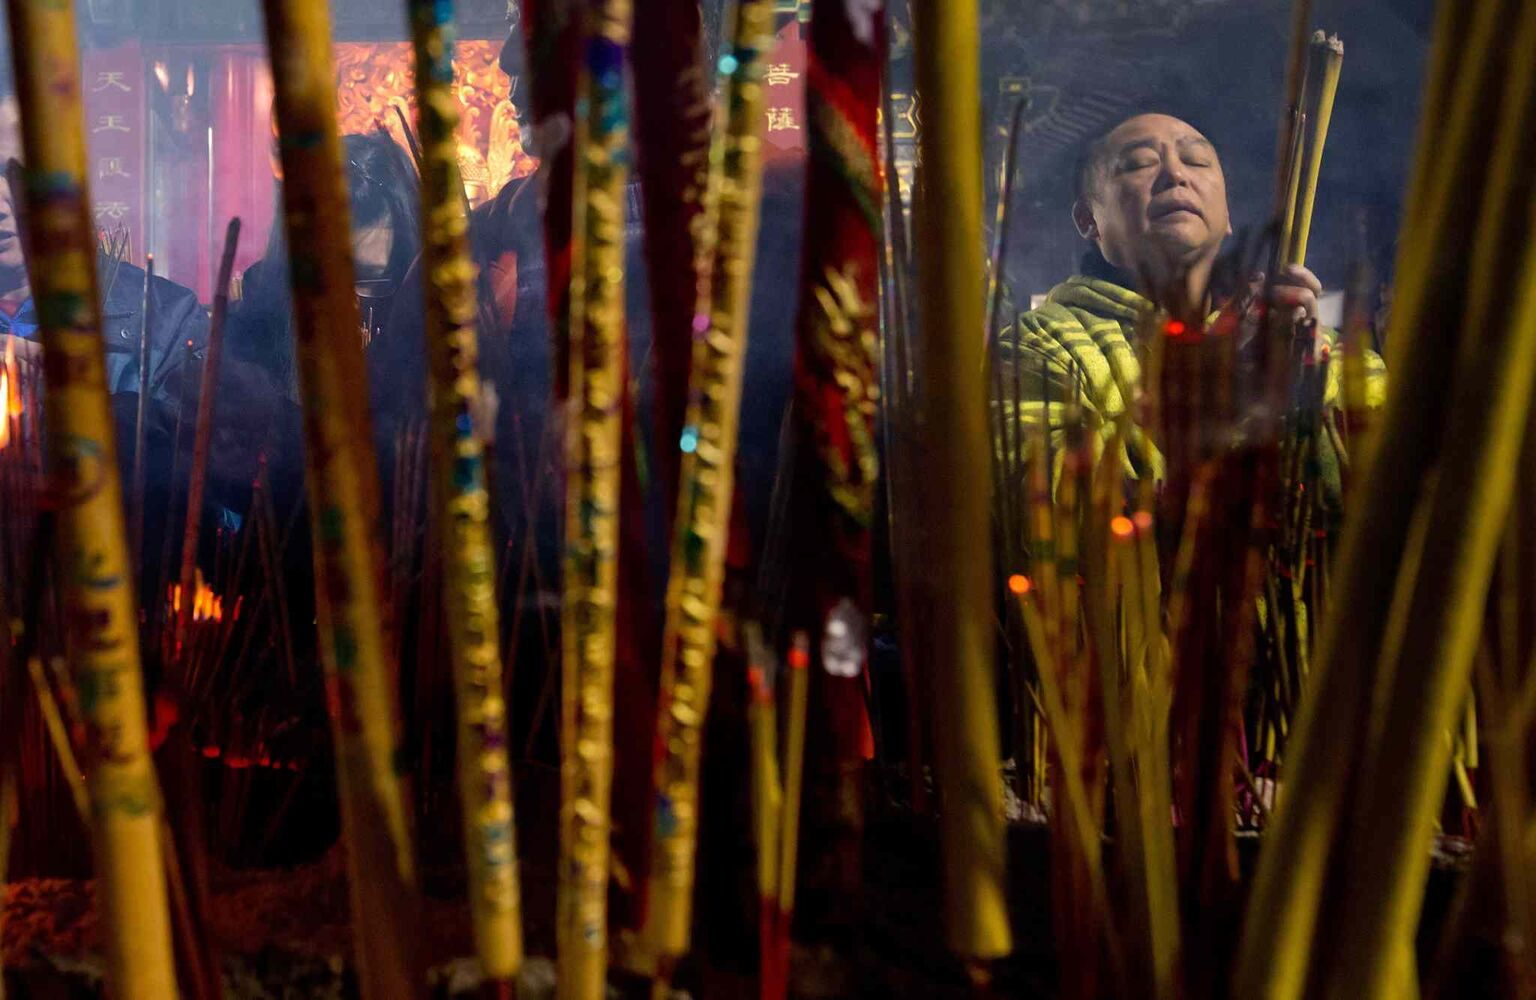 A man is framed by burning incense sticks as he prays to mark the Lunar New Year at the International Buddhist Temple in Richmond, B.C., during the early morning hours of Friday, January 31, 2014.  (Darryl Dyck / The Canadian Press)